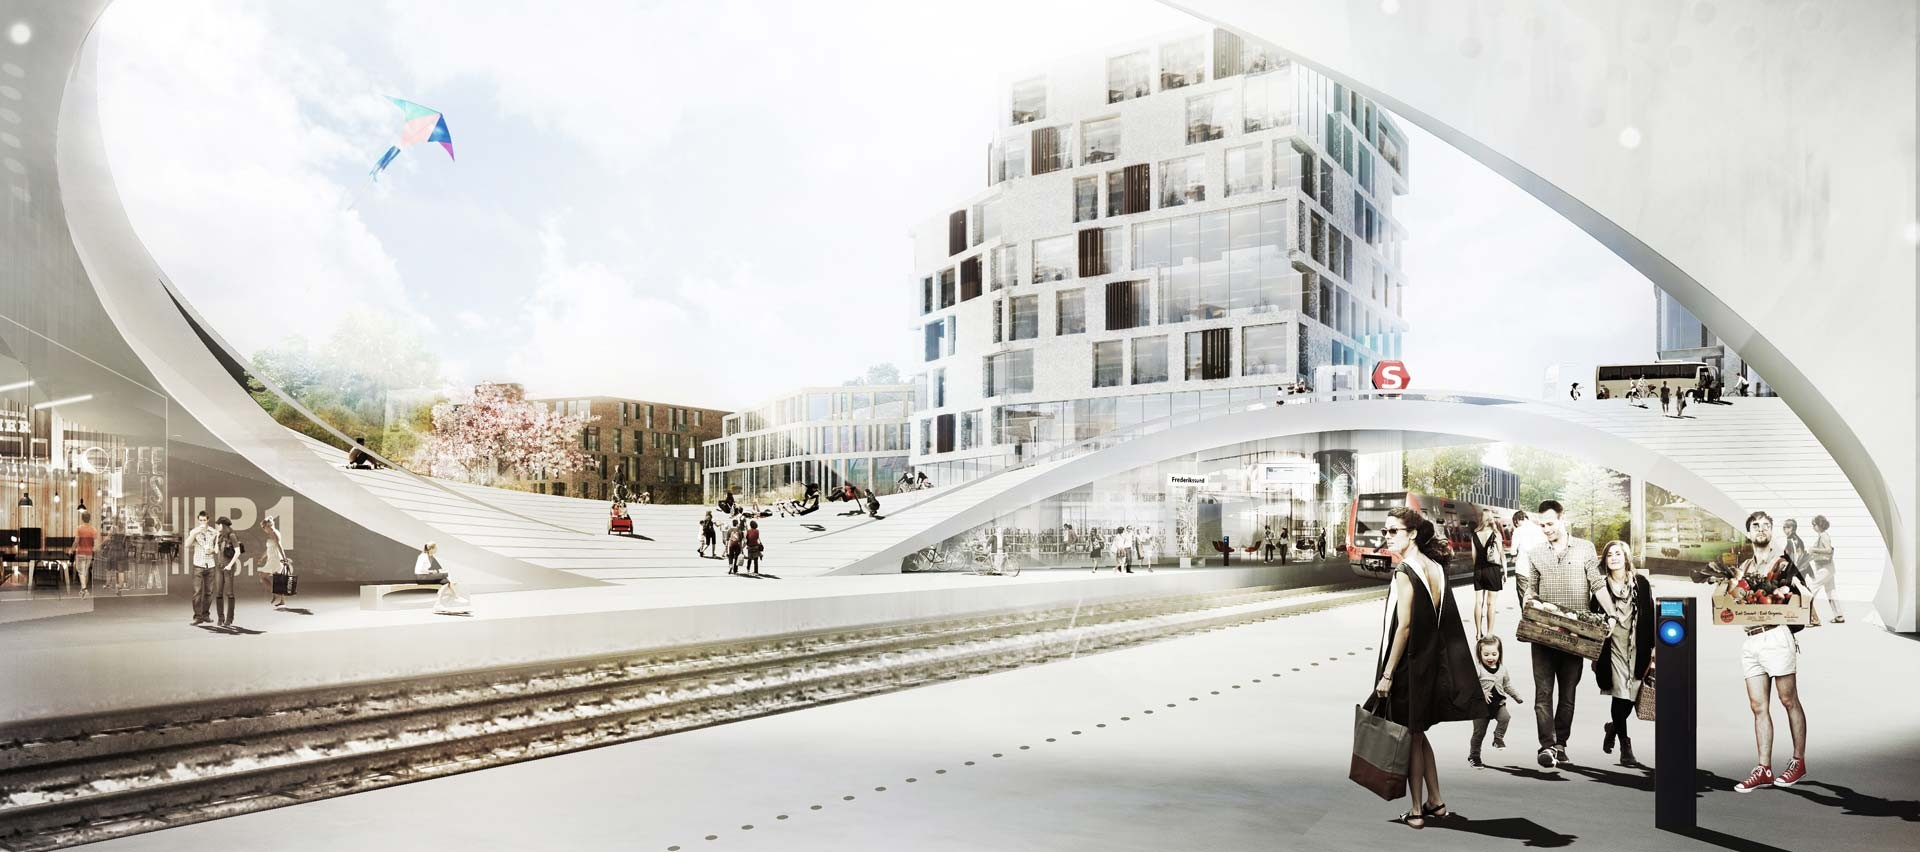 Henning Larsen Wins Competition for Future Vinge Train Station in Denmark, © Henning Larsen Architects